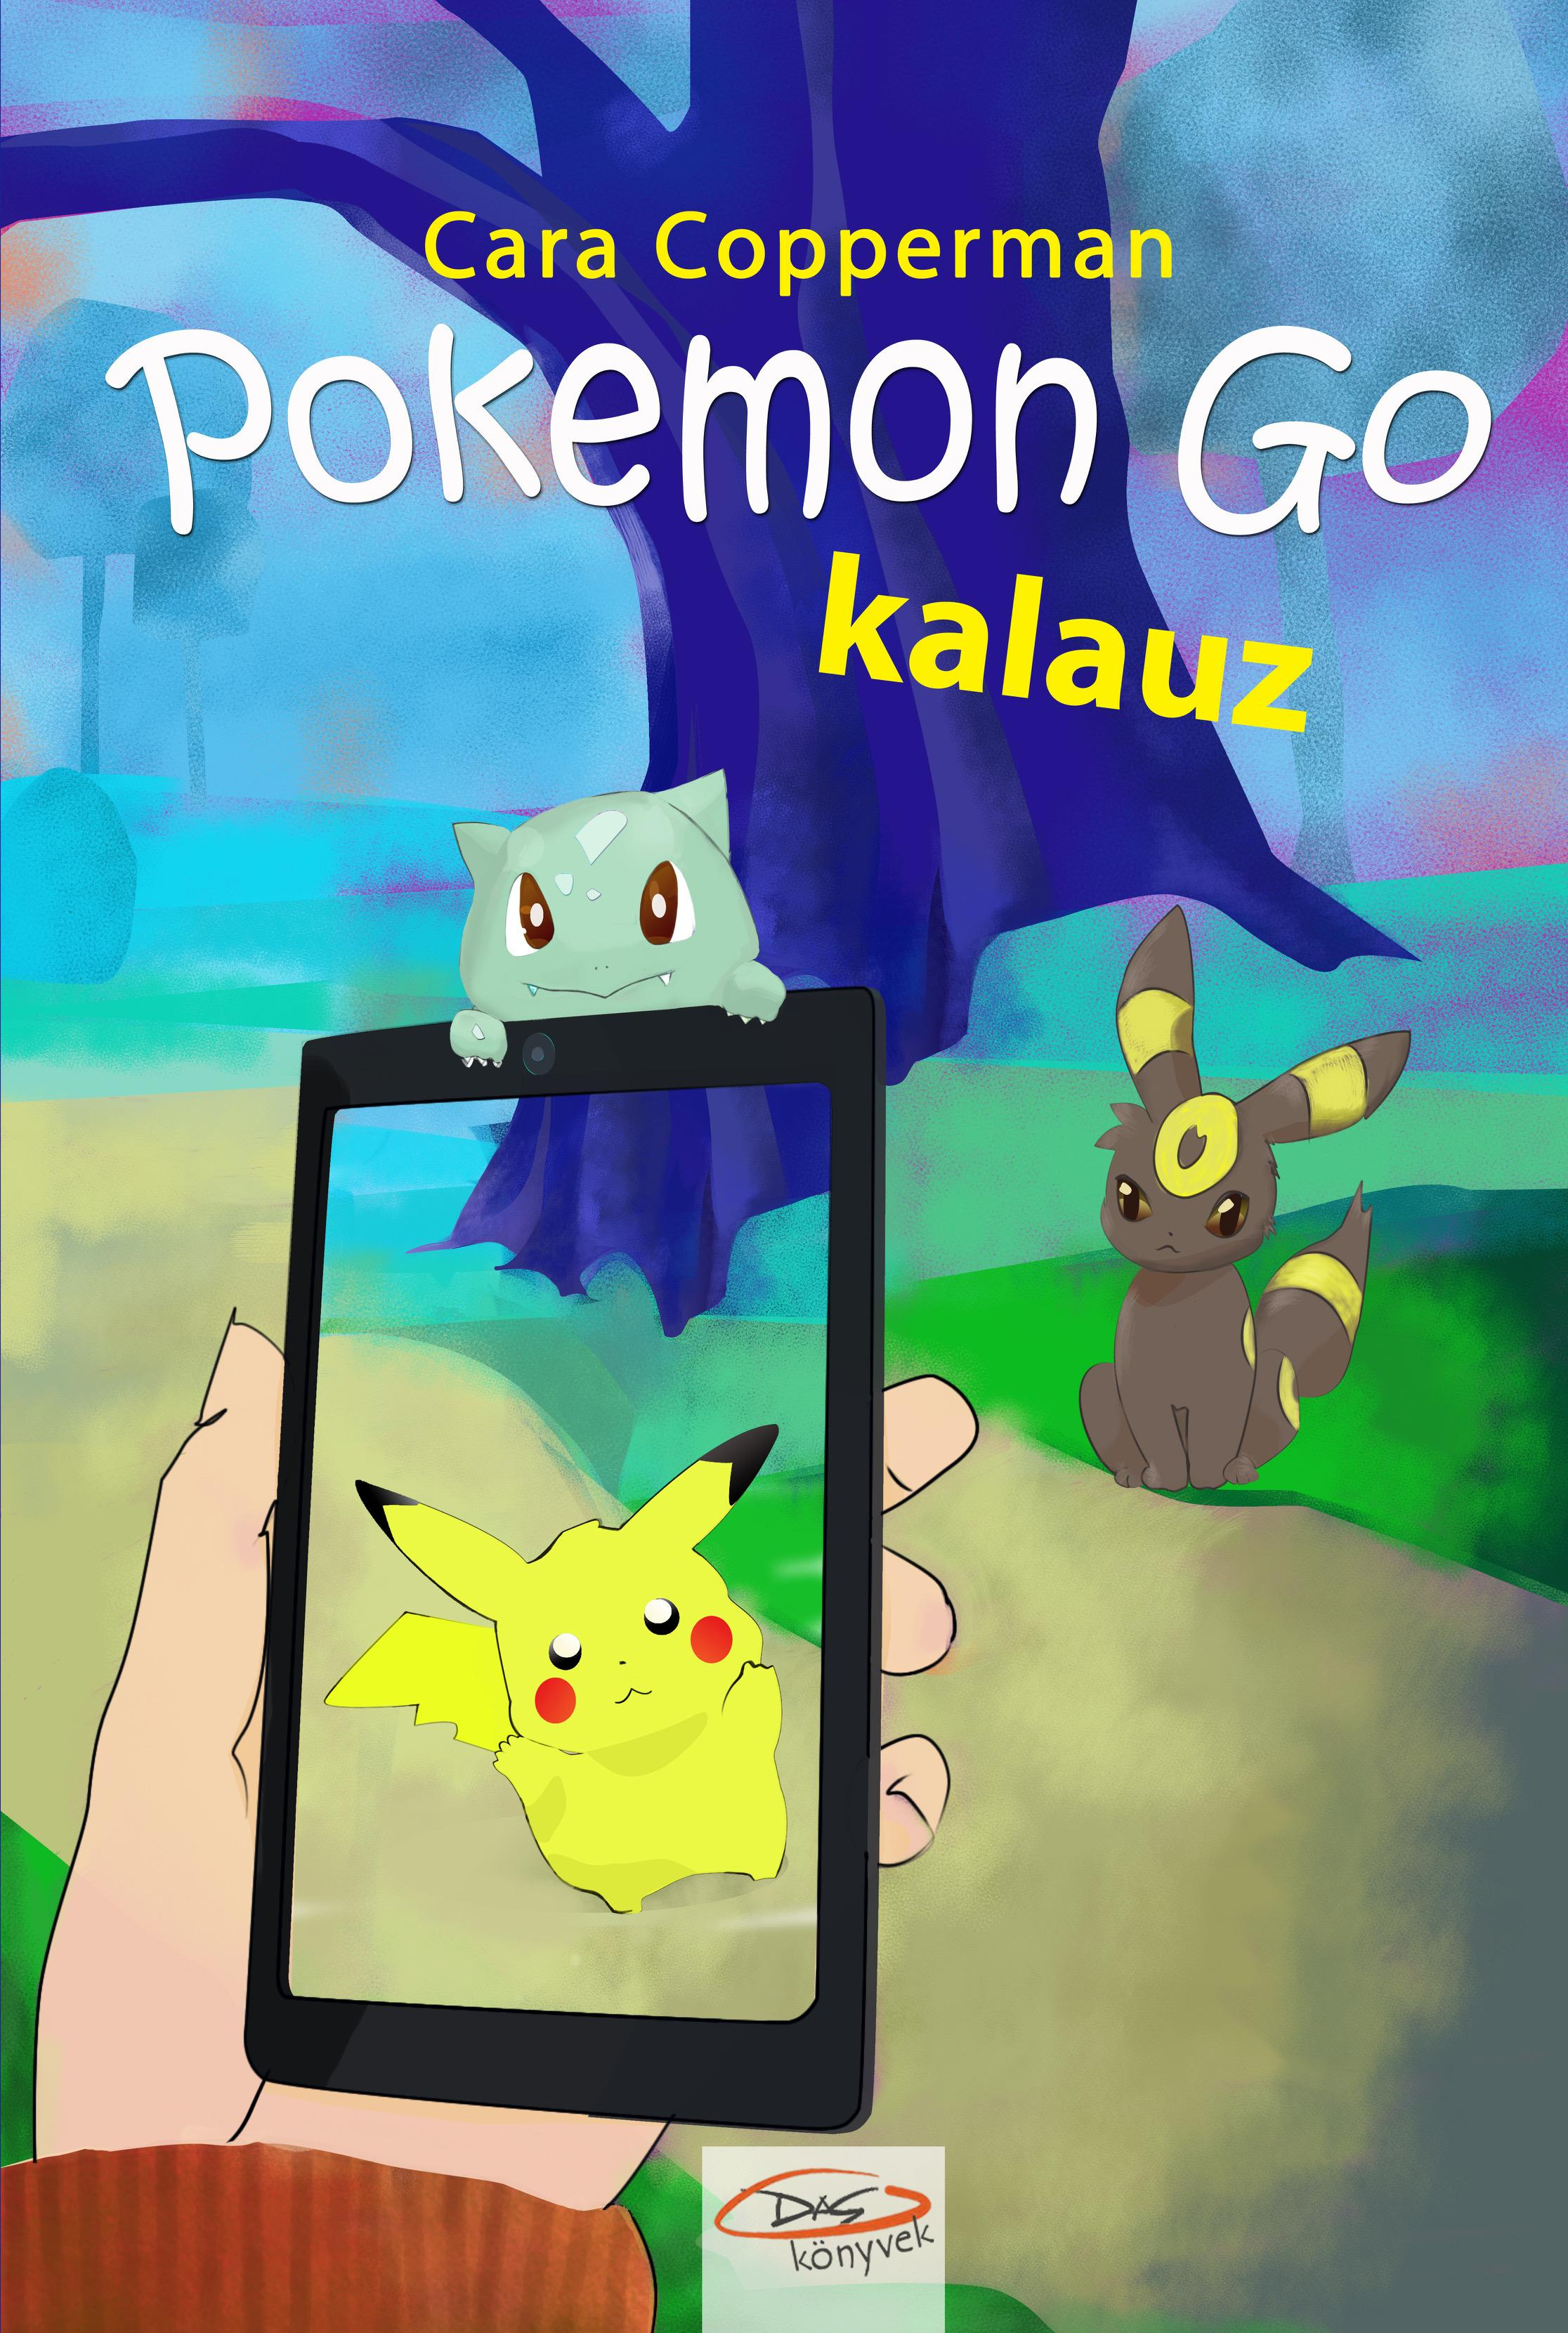 COPPERMAN, CARA - POKEMON GO KALAUZ